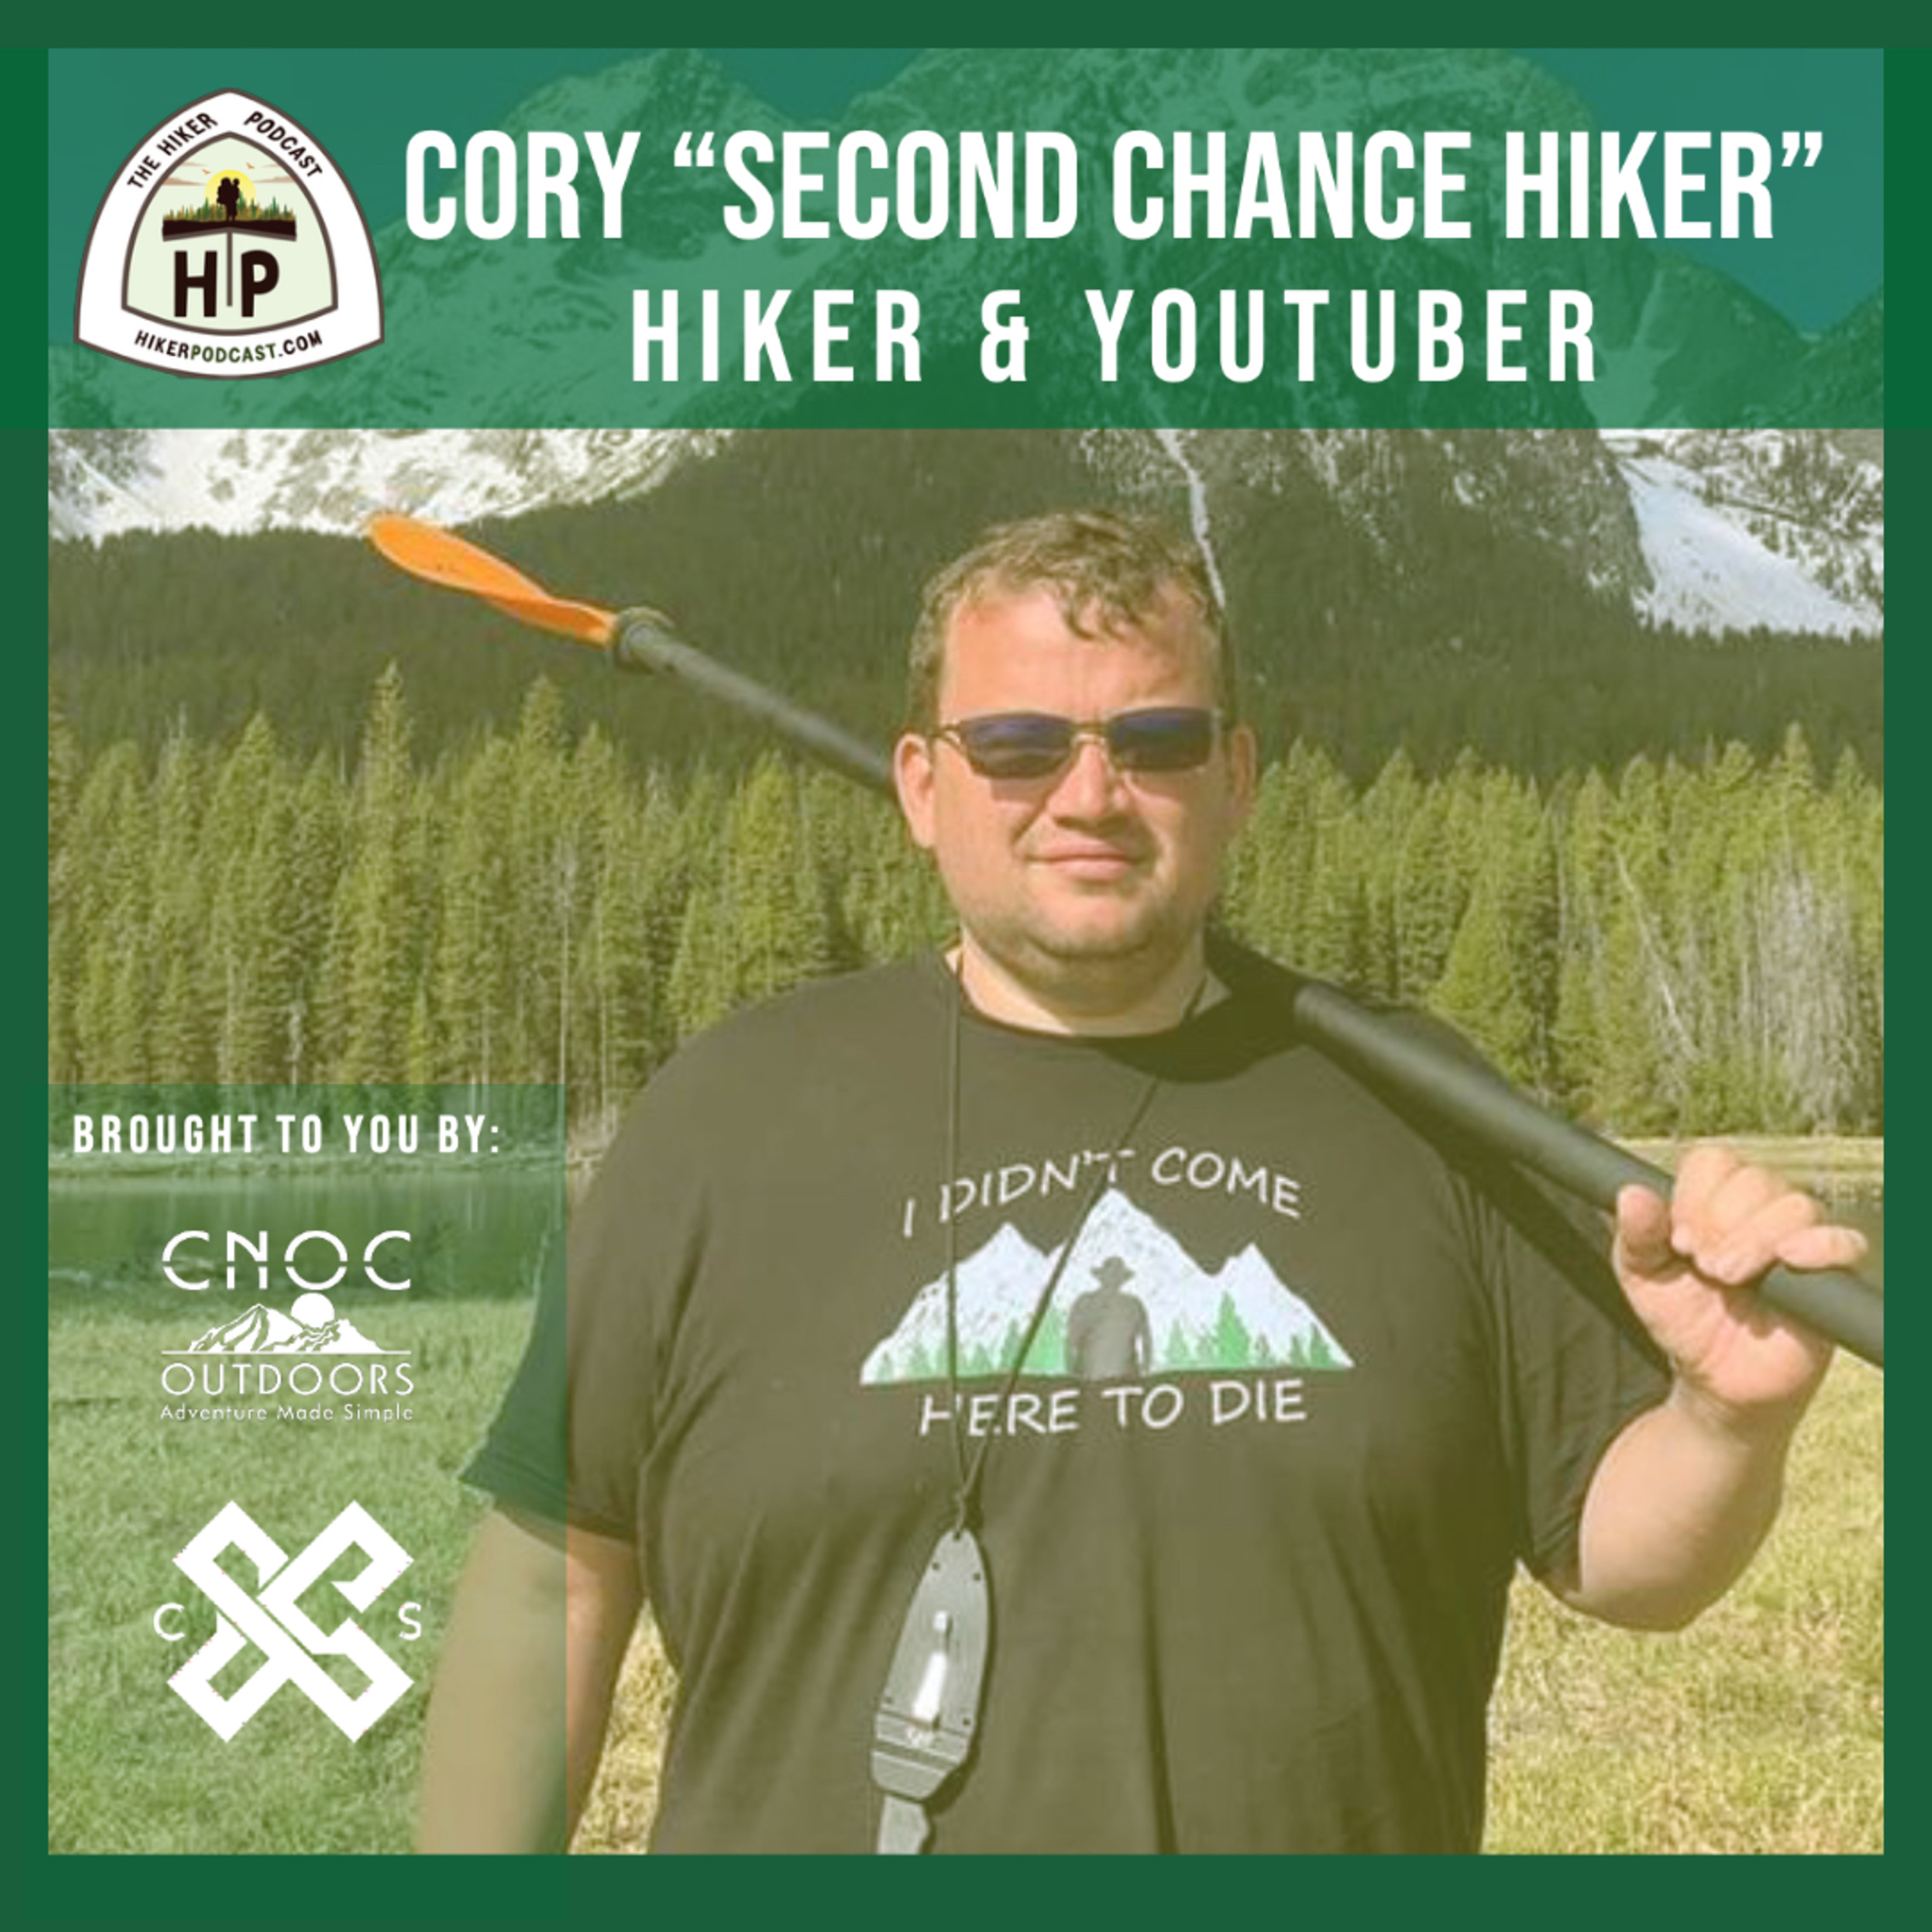 """Cory """"Second Chance Hiker"""": Hiker and YouTuber 